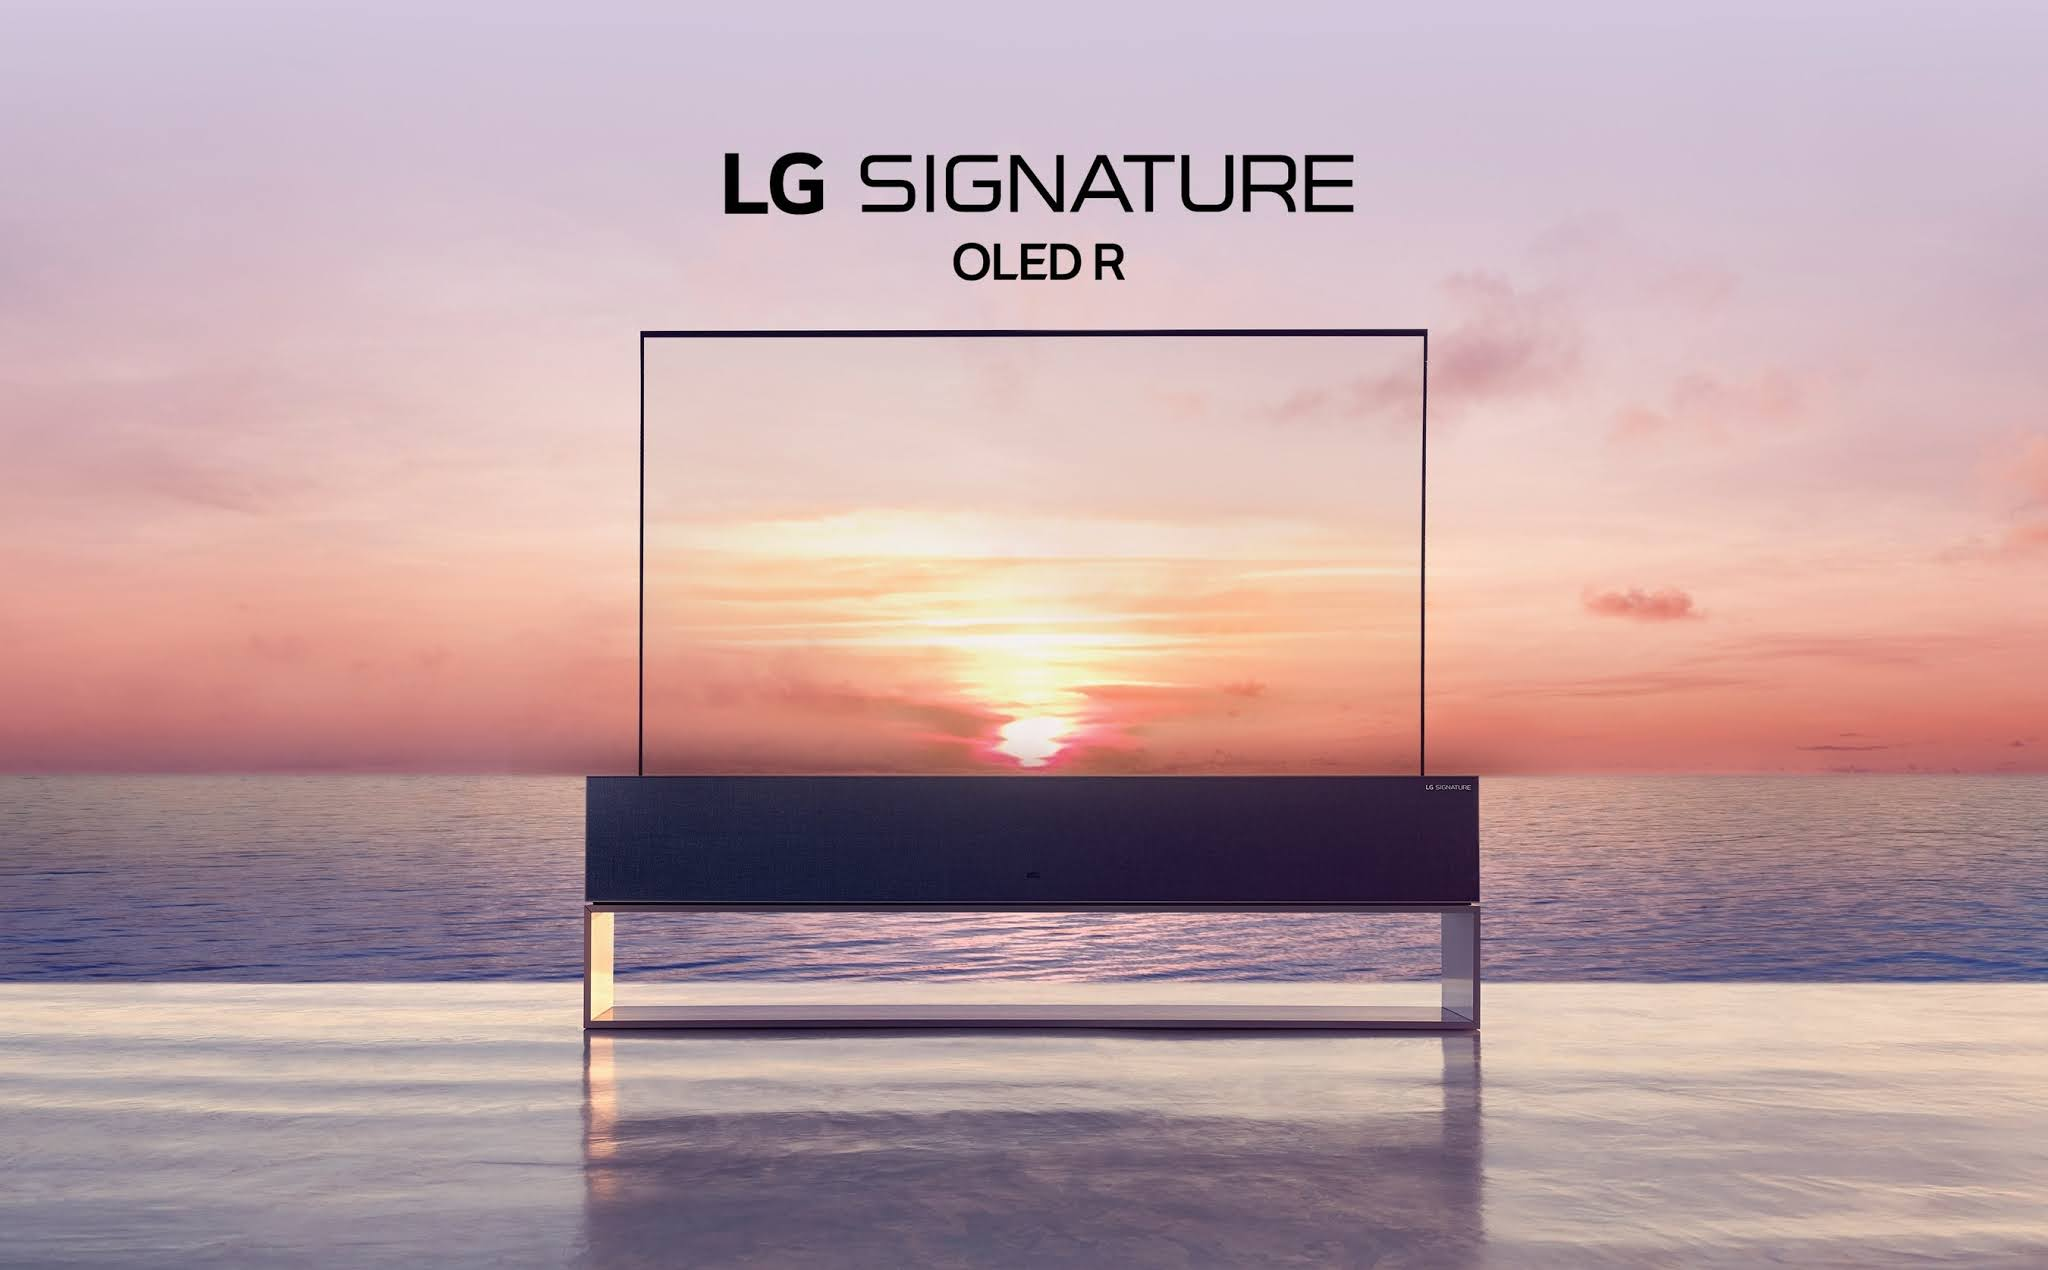 LG'S Highly Anticipated Rollable OLED TV Now Available In United States